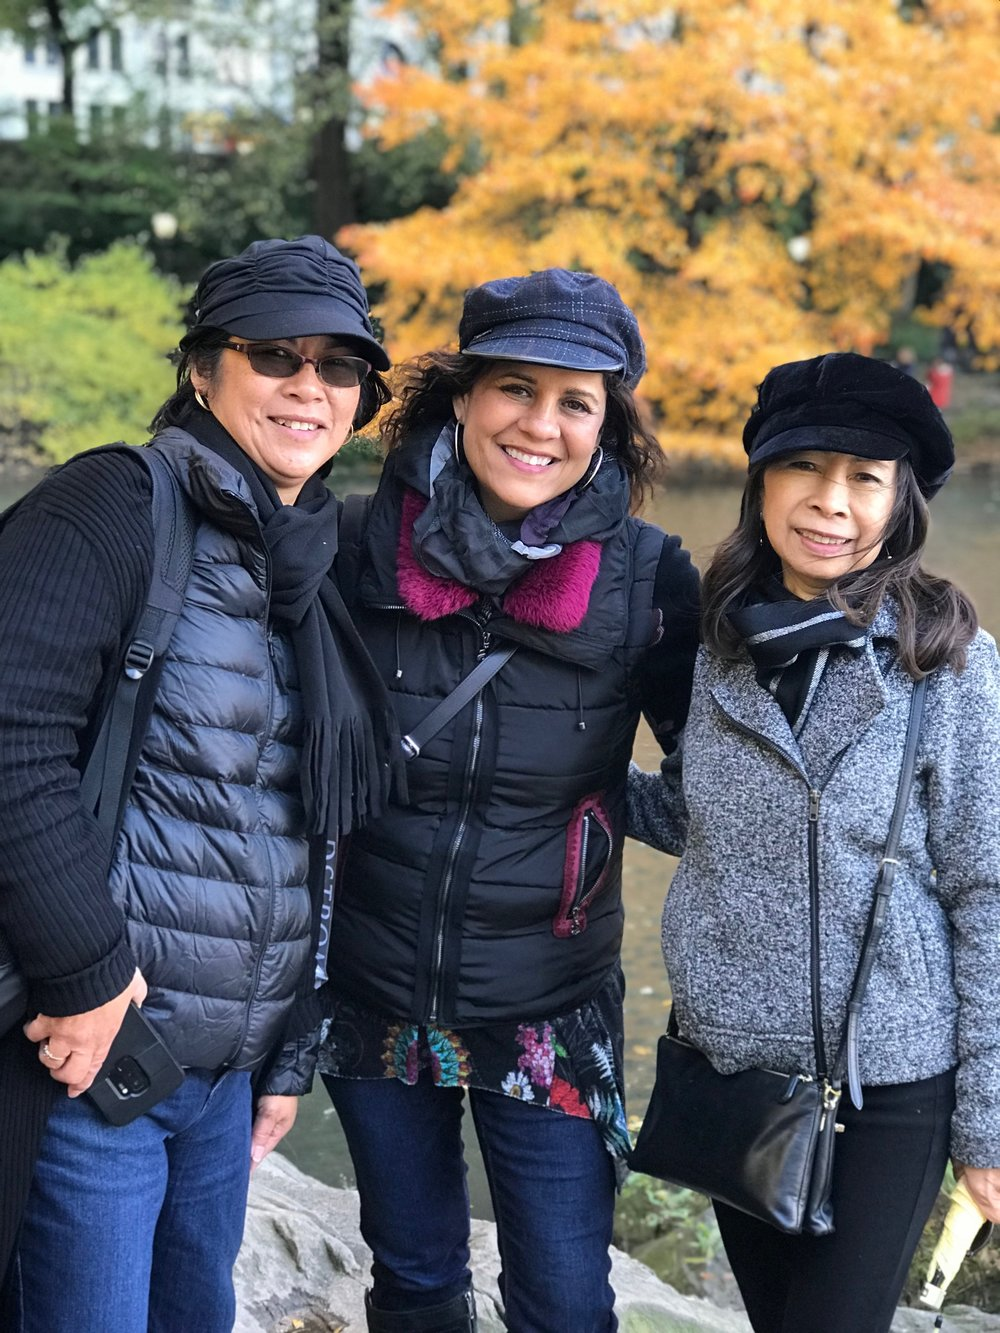 Teresa, Cindy and Zeny at Central Park